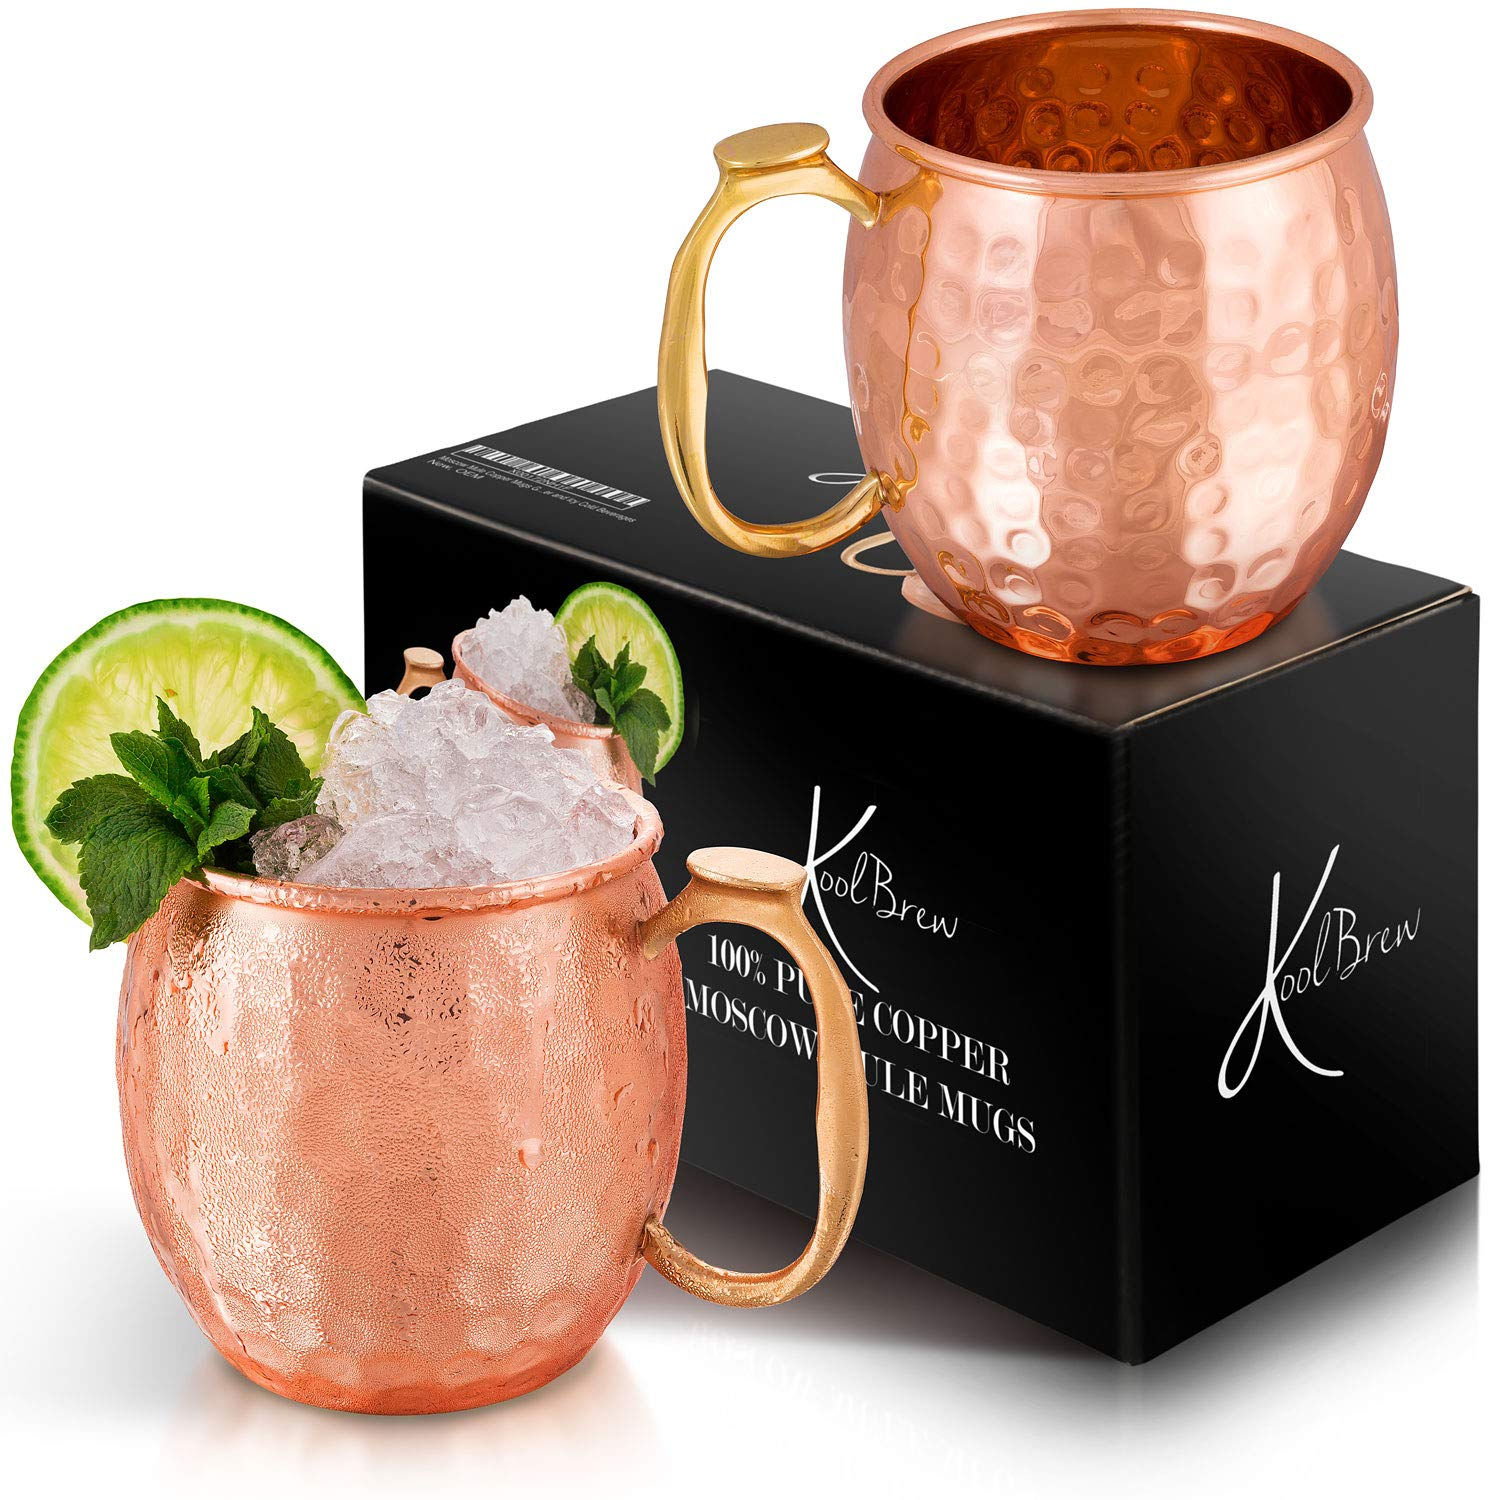 KoolBrew Moscow Mule Copper Mugs Gift Set of 2 Copper Mule Mugs,100% Pure Solid Copper Cups with Hammered Finish Avran Ltd